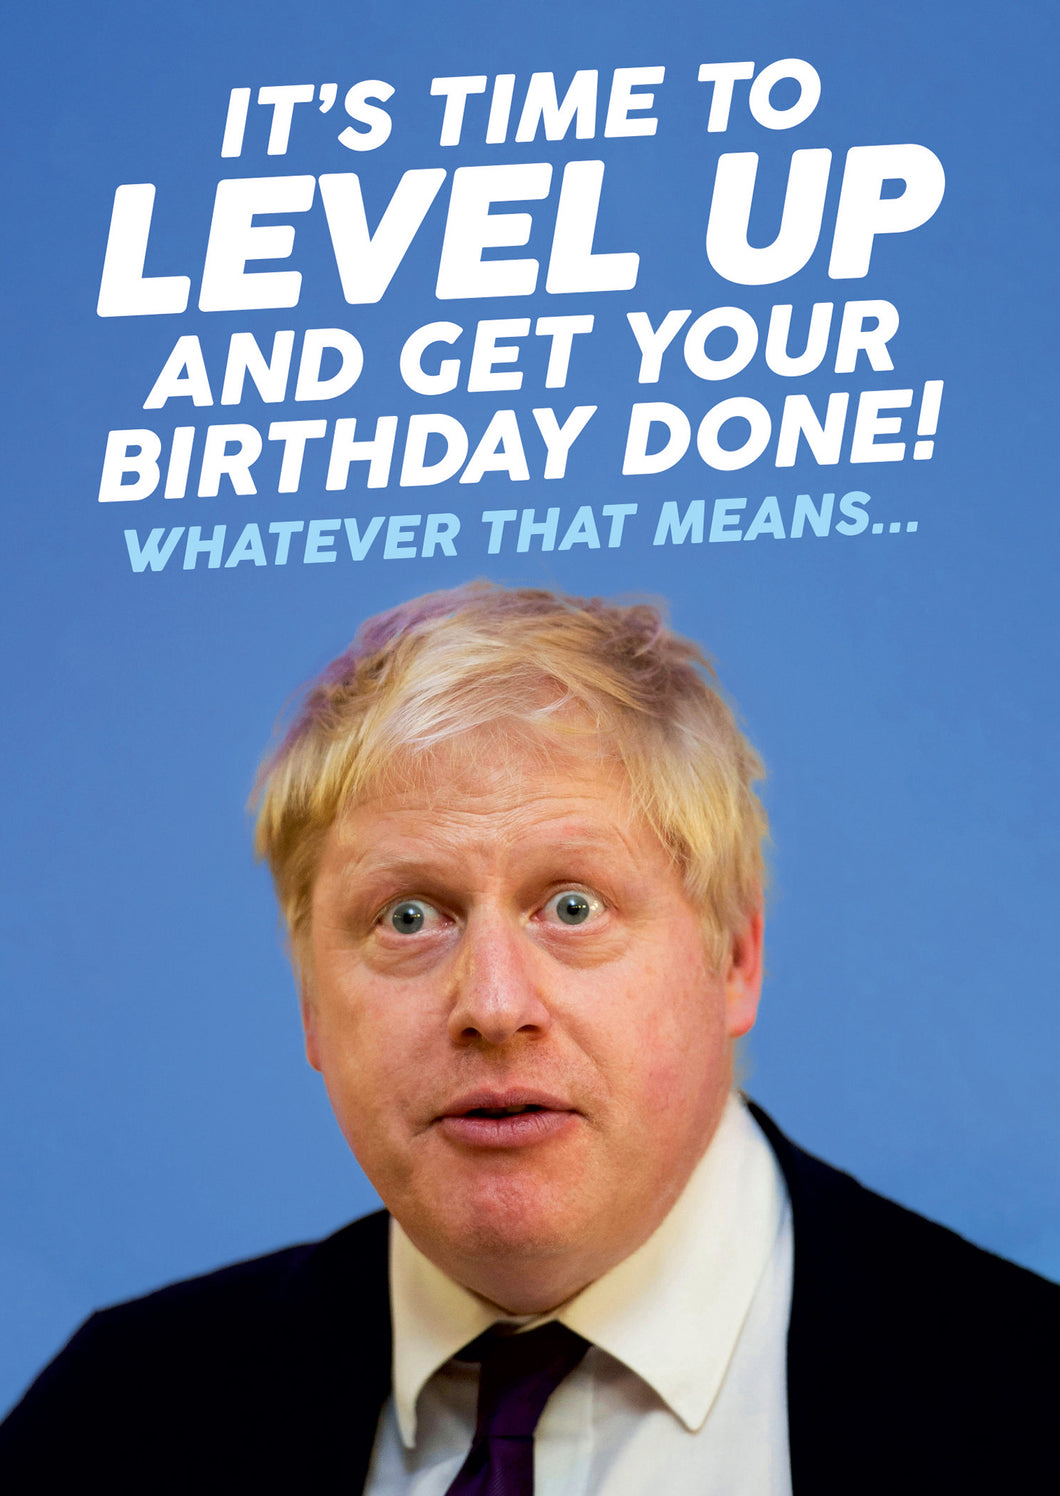 Boris Johnson Level Up Birthday Card